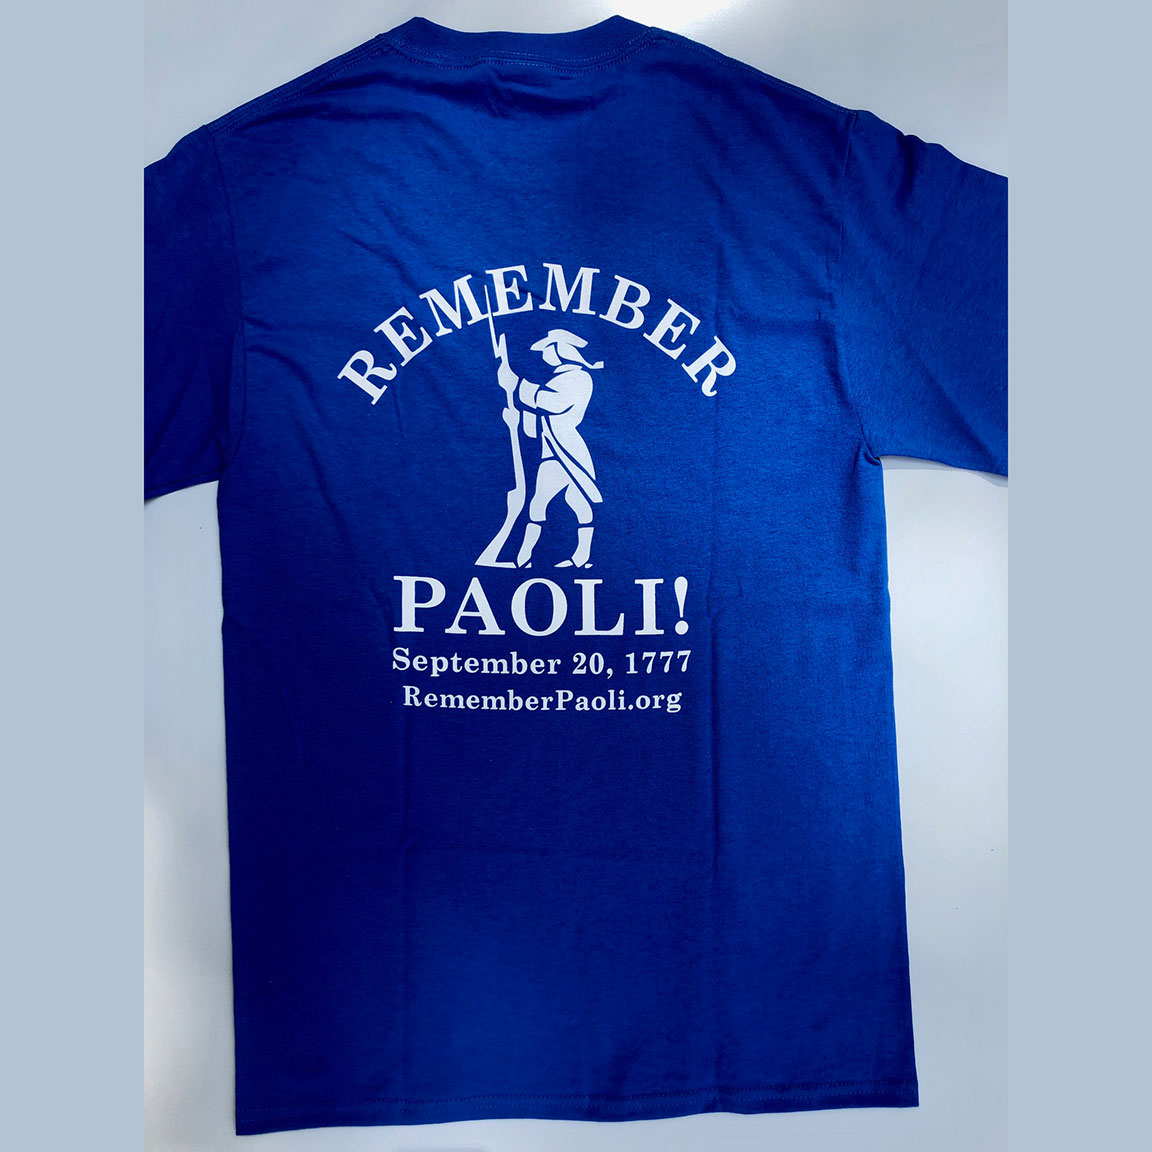 Remember Paoli! Shirt – Adult, Blue